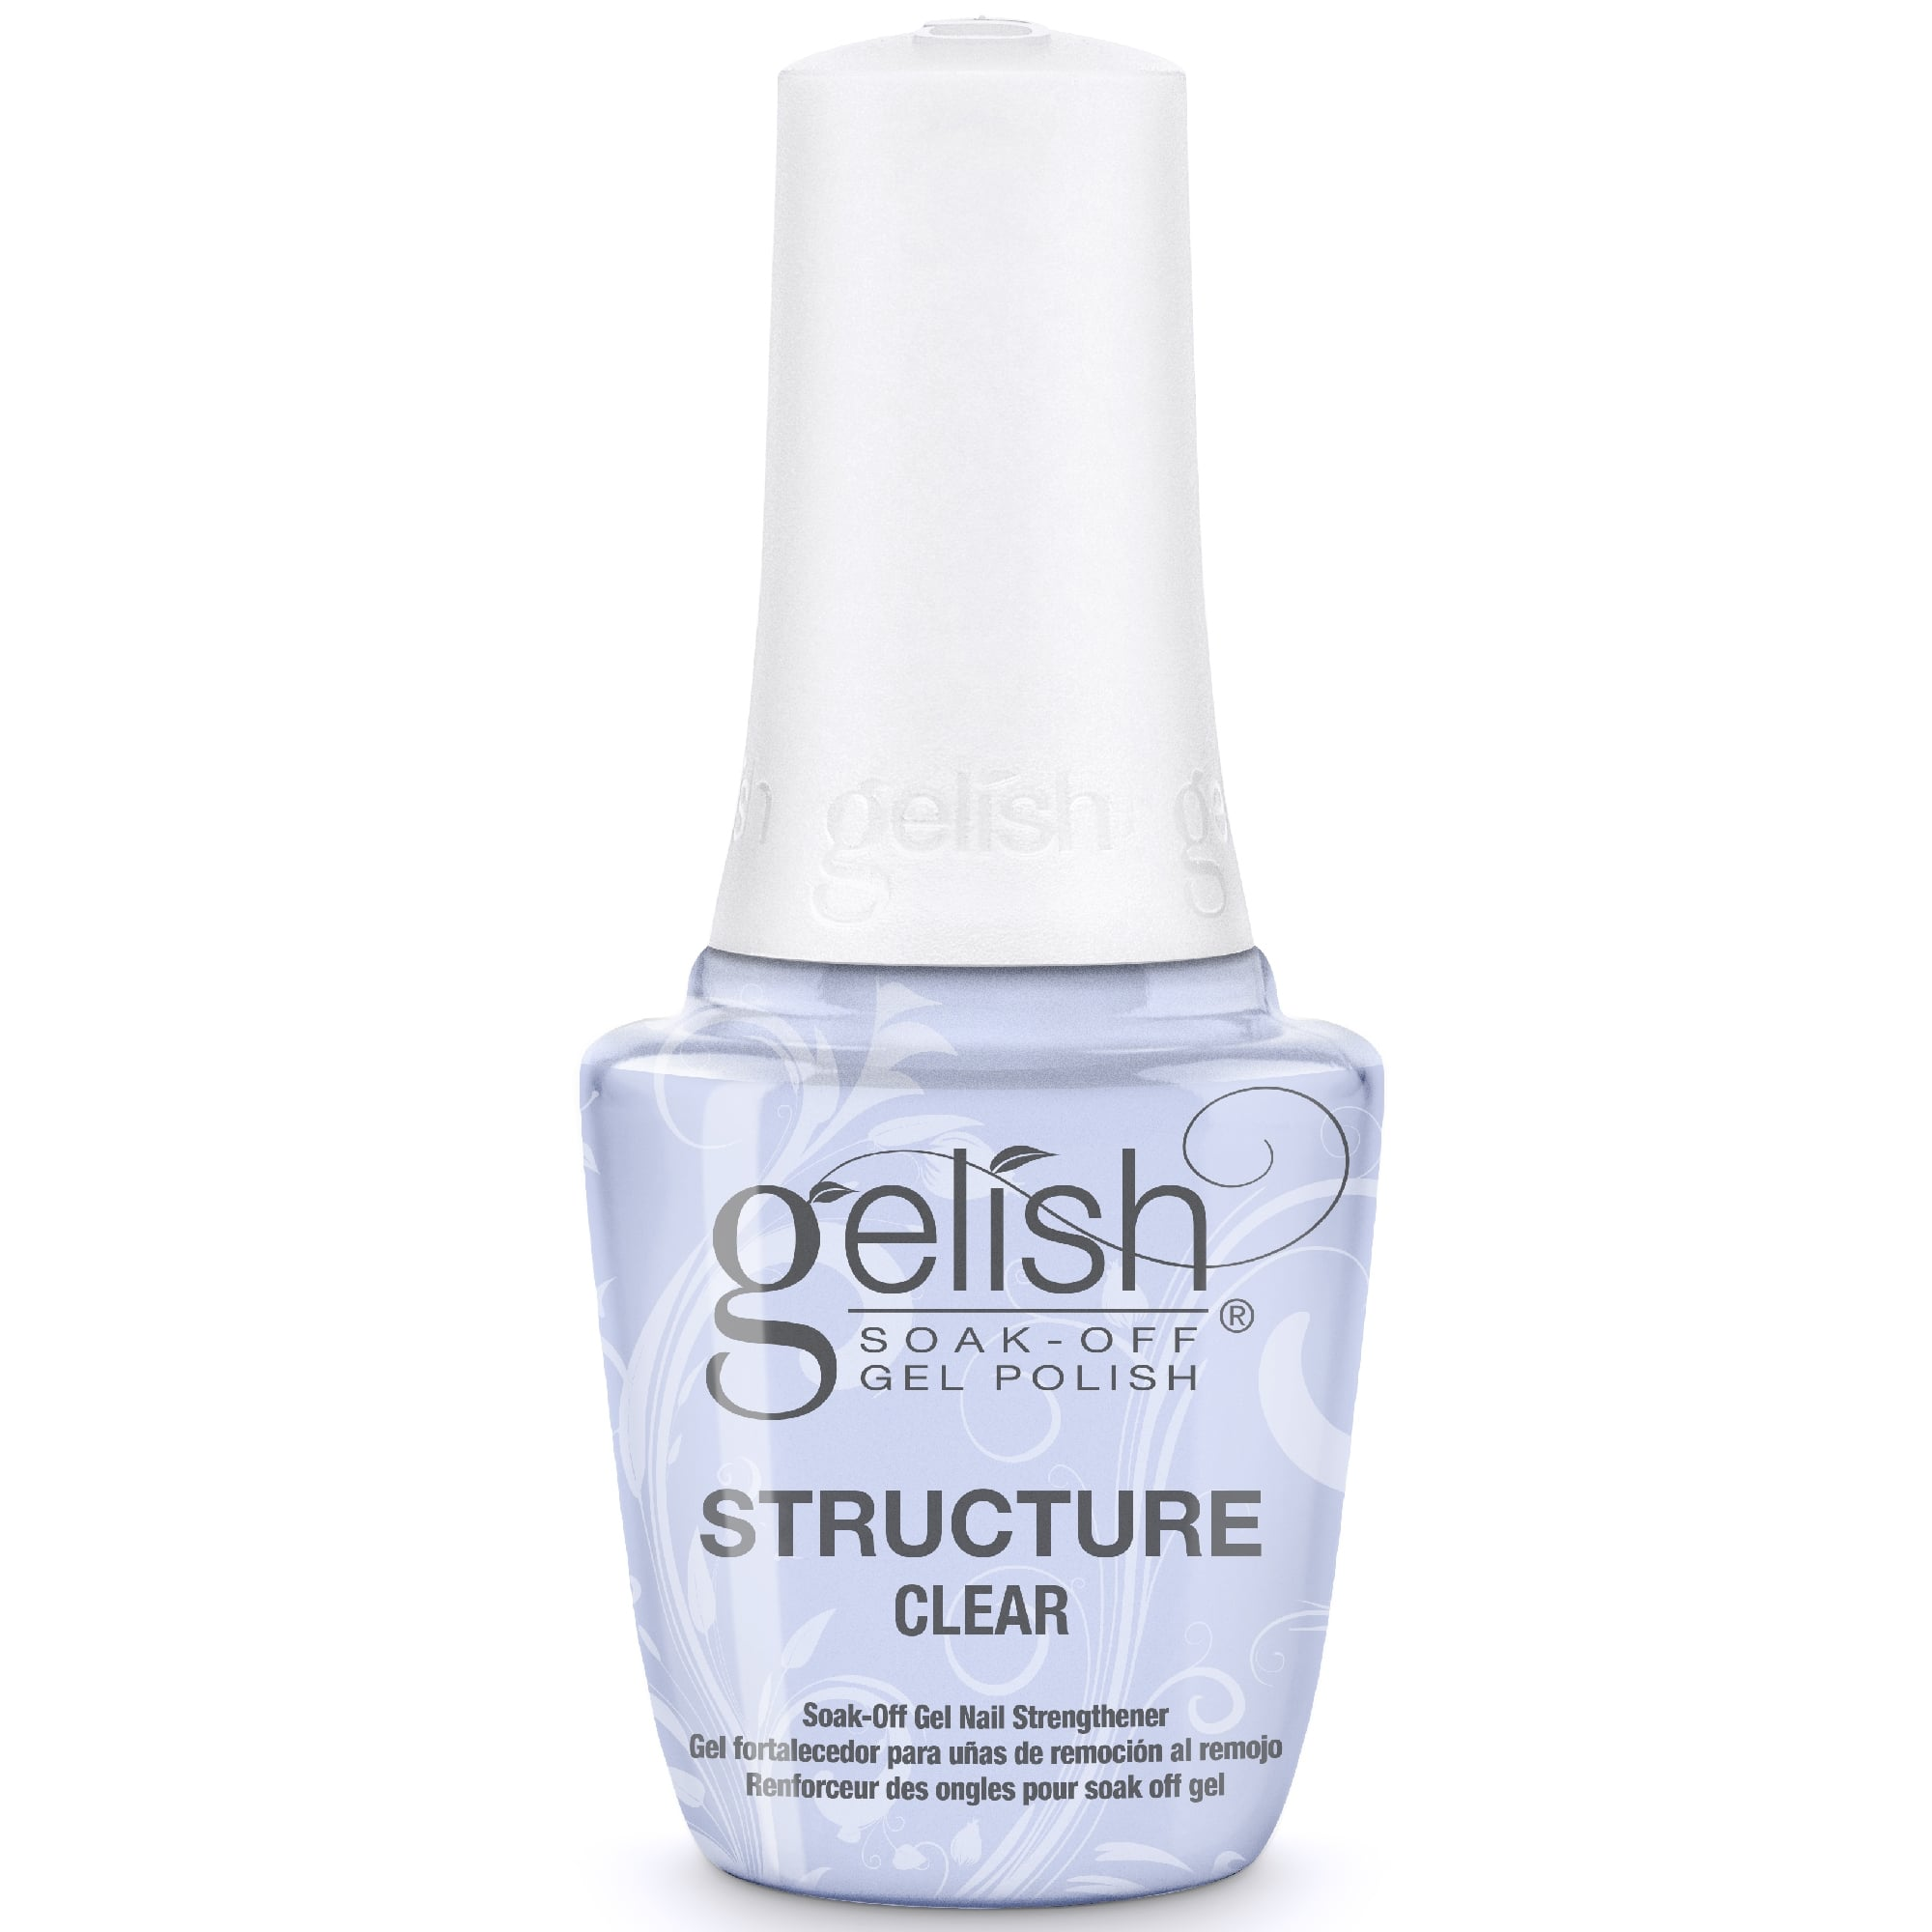 Gelish STRUCTURE Soak-Off Gel Nail Strengthener - Clear (1140006) 15ml